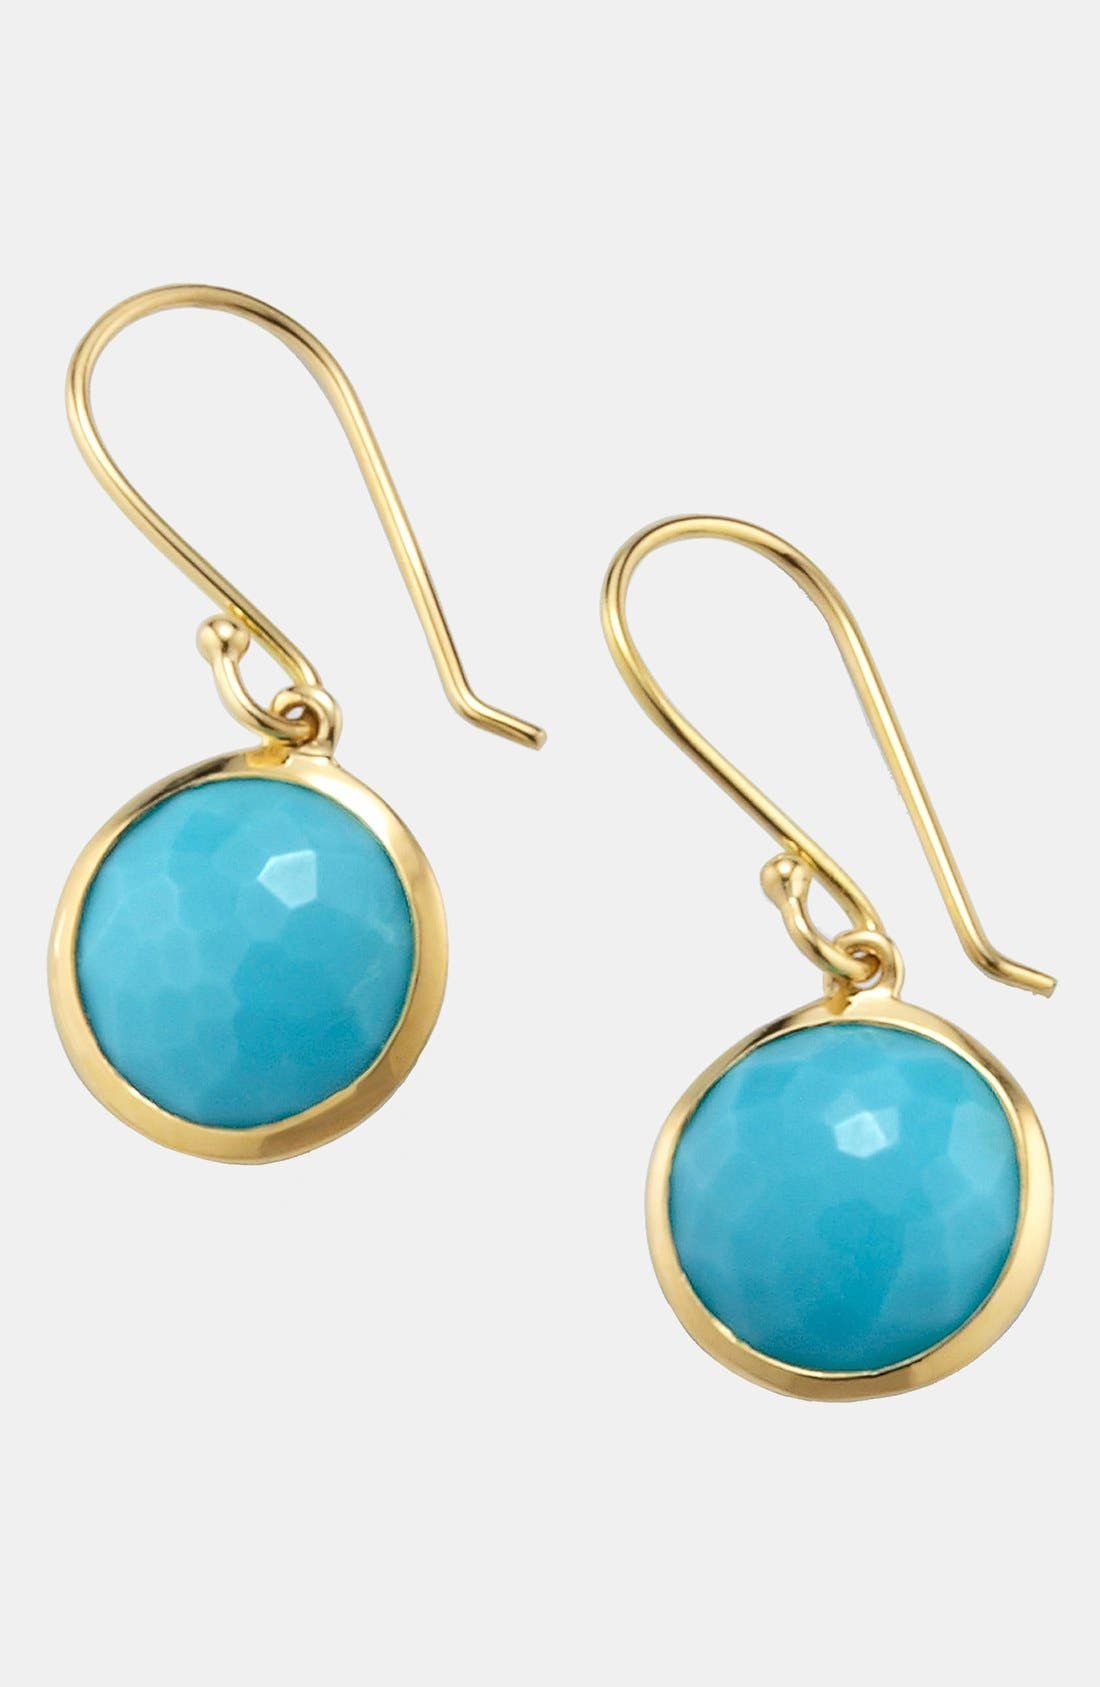 'Rock Candy - Mini Lollipop' 18k Gold Drop Earrings,                         Main,                         color, YELLOW GOLD/TURQUOISE